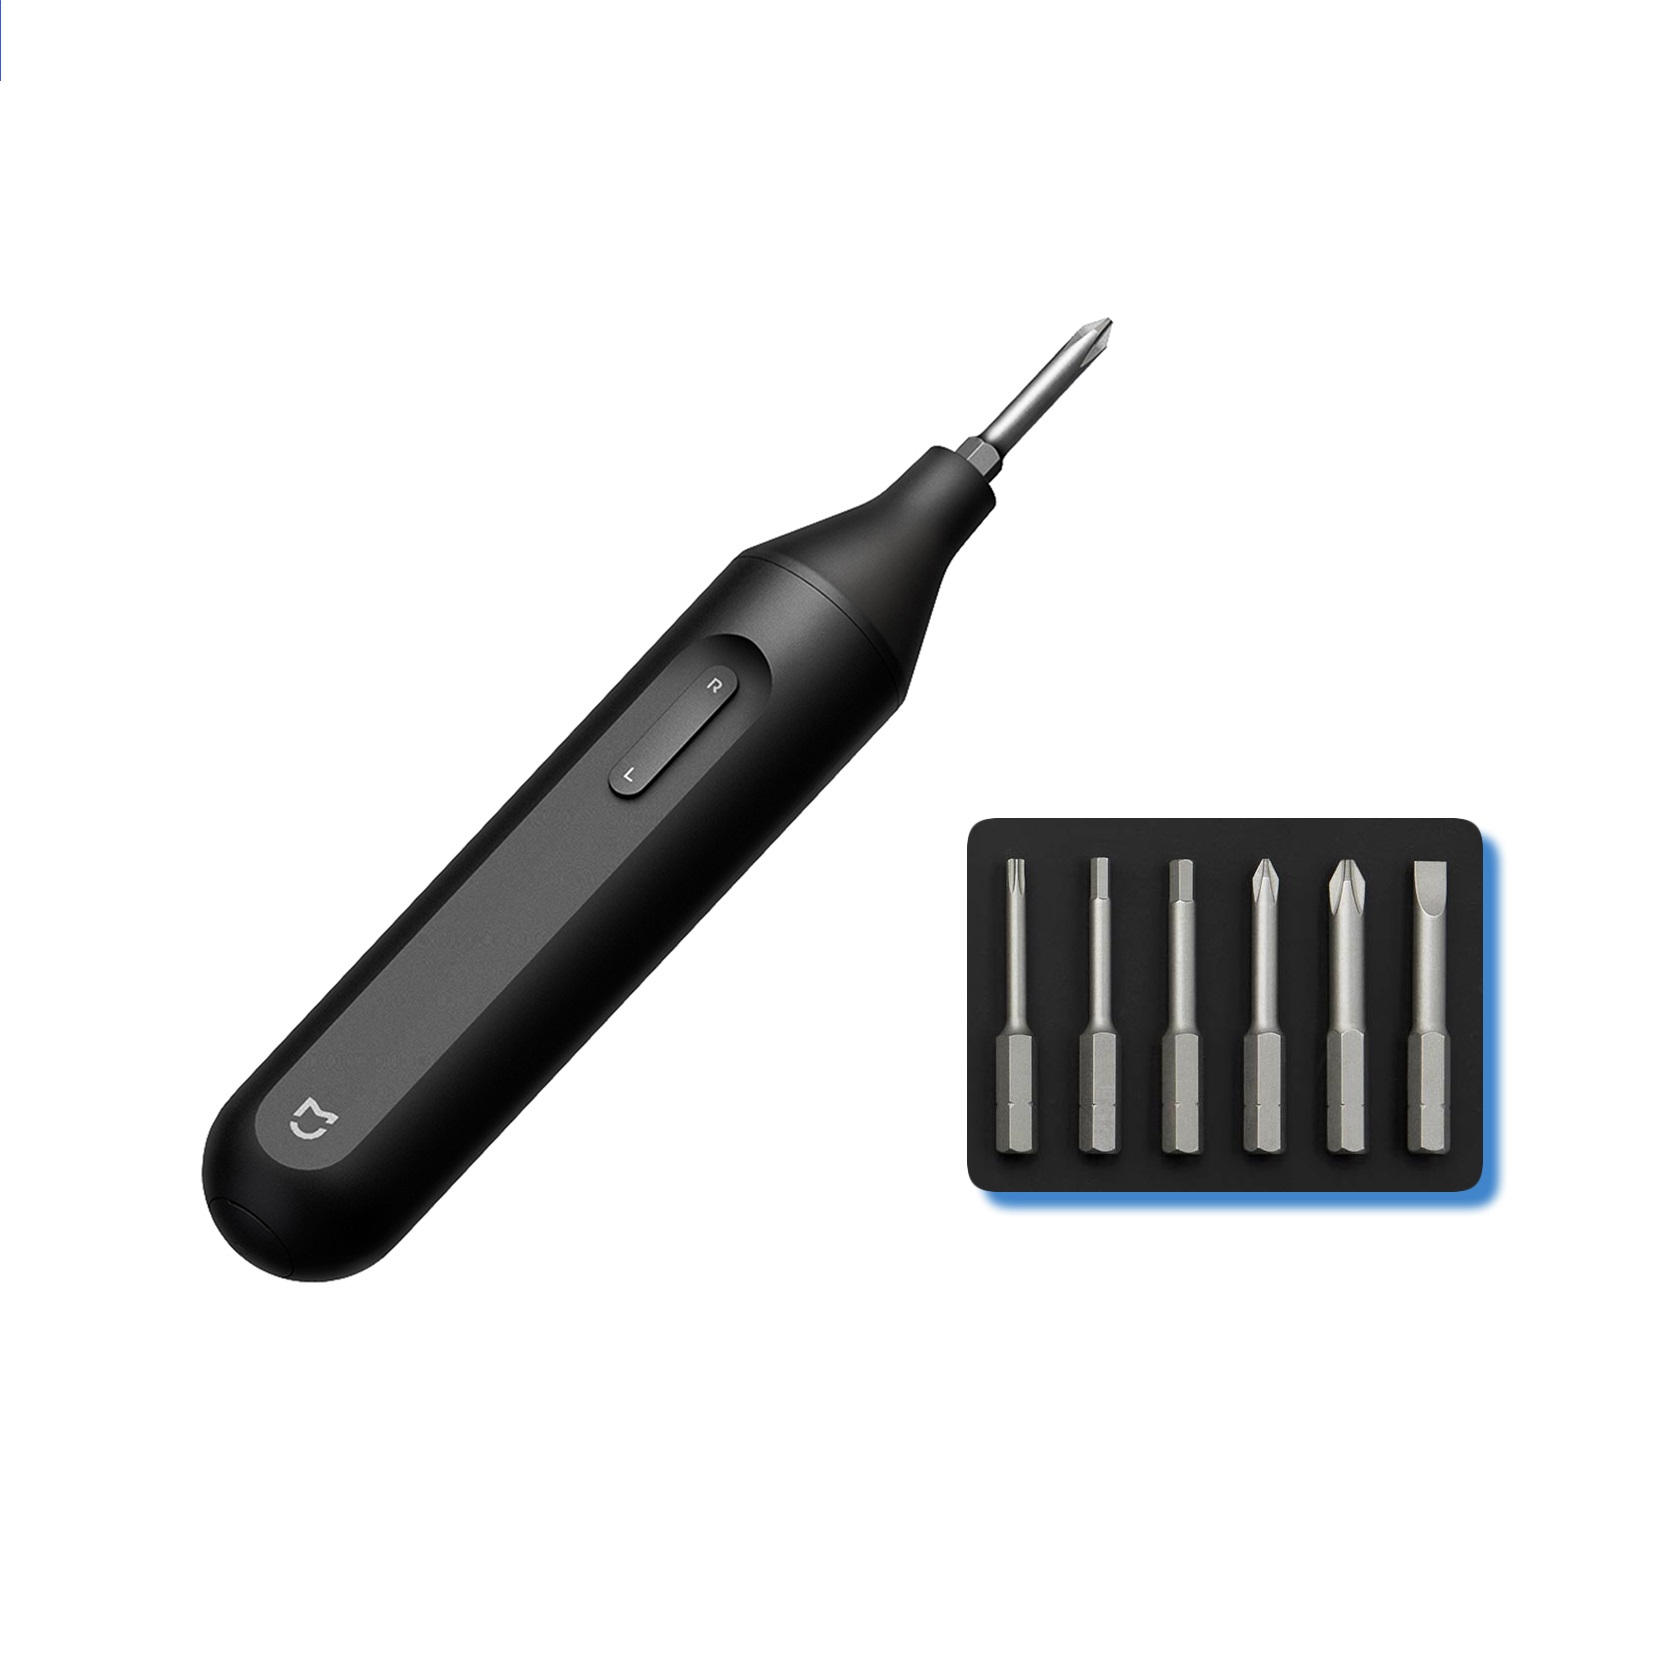 New Xiaomi Mijia Screwdriver Manual Automatic Two Modes Portable Electric Screwdriver Rechargeable Cordless Screw-driver Small